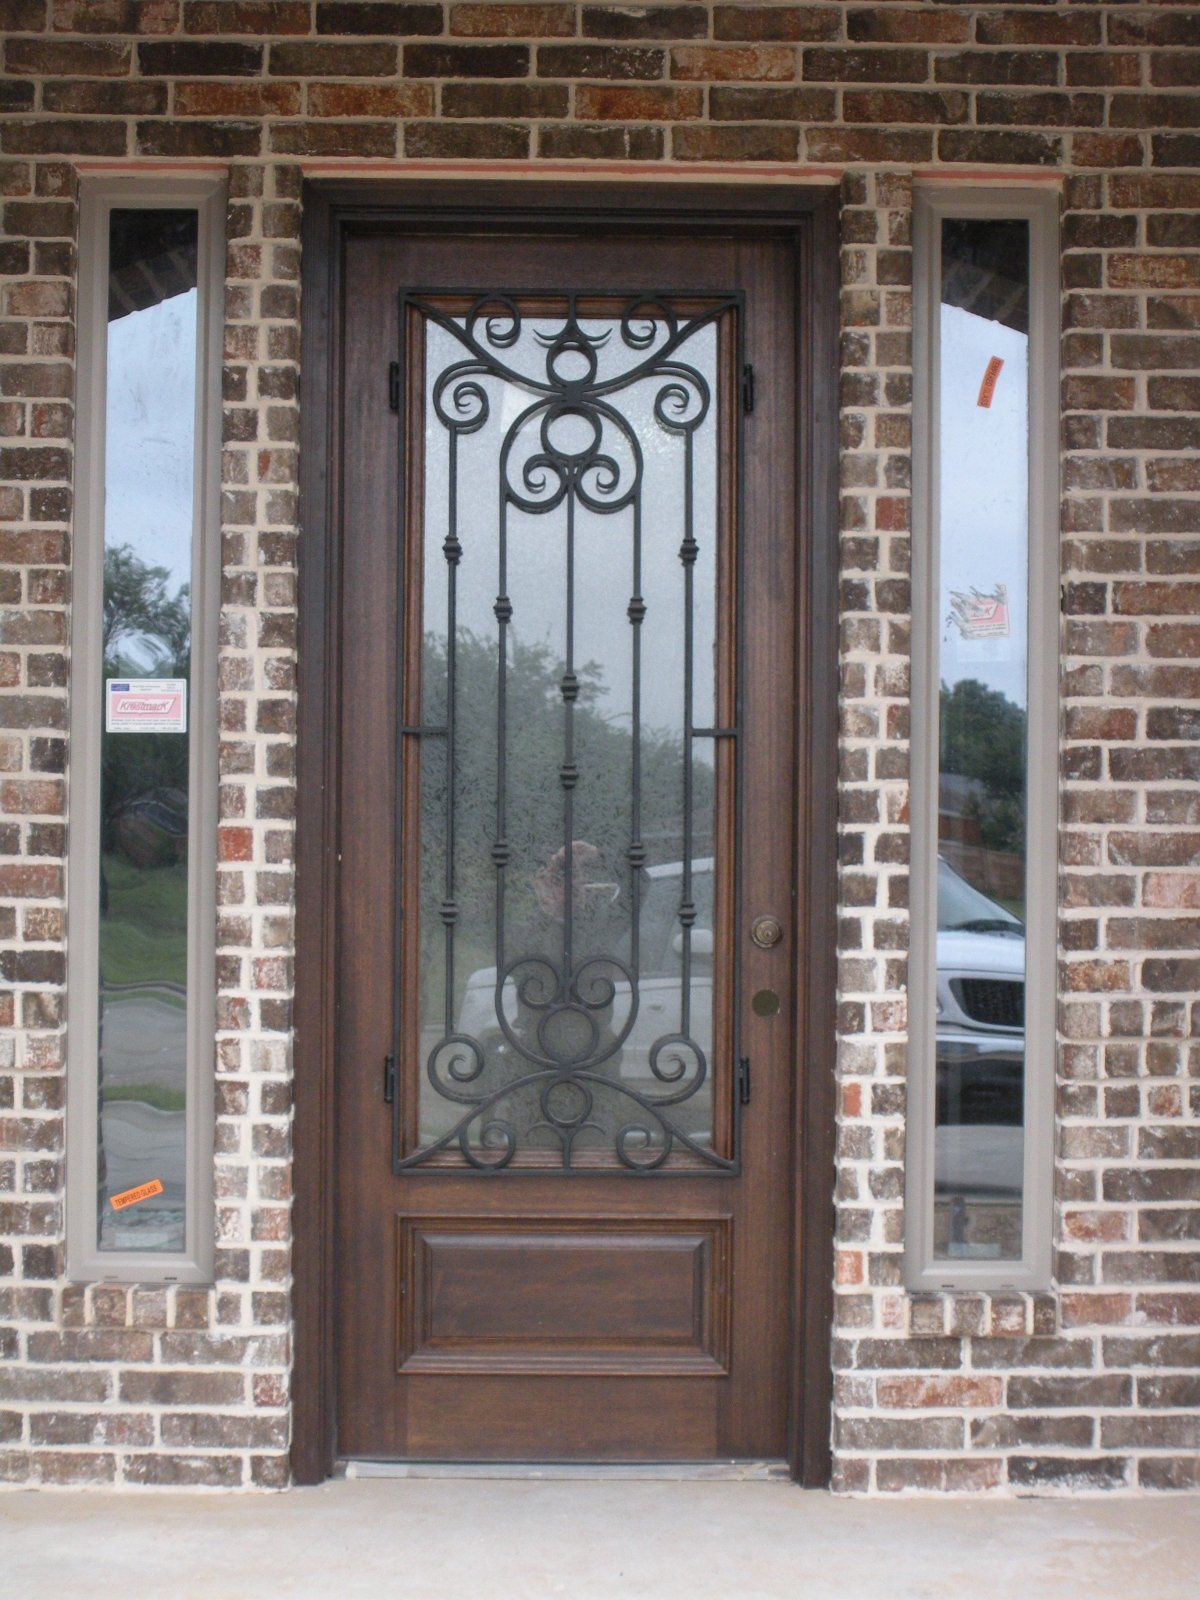 Astonishing Half Glass Rustic Trellis Front Door Ideas With Brown Mahogany  Frames As Well As Brick Wall Exposed Facade For Rustic Front Entrance Door  Ideas